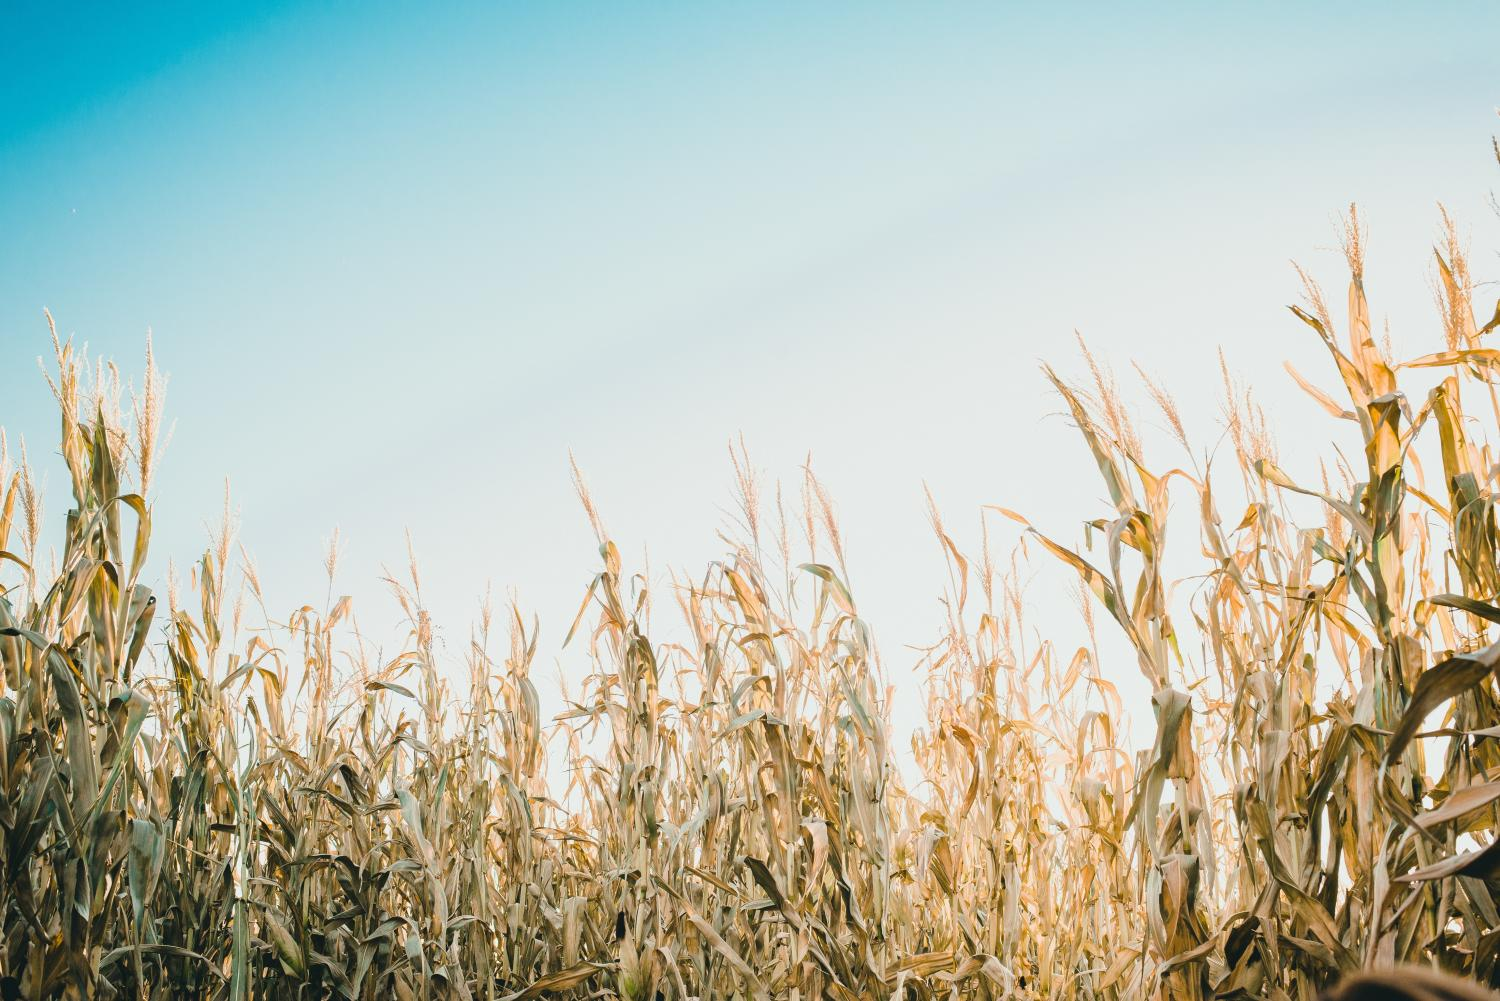 Americans are probably more familiar with genetically modified crops and foods than they realize, yet biotech companies have a long road ahead to overcome consumers' skepticism of this technology.